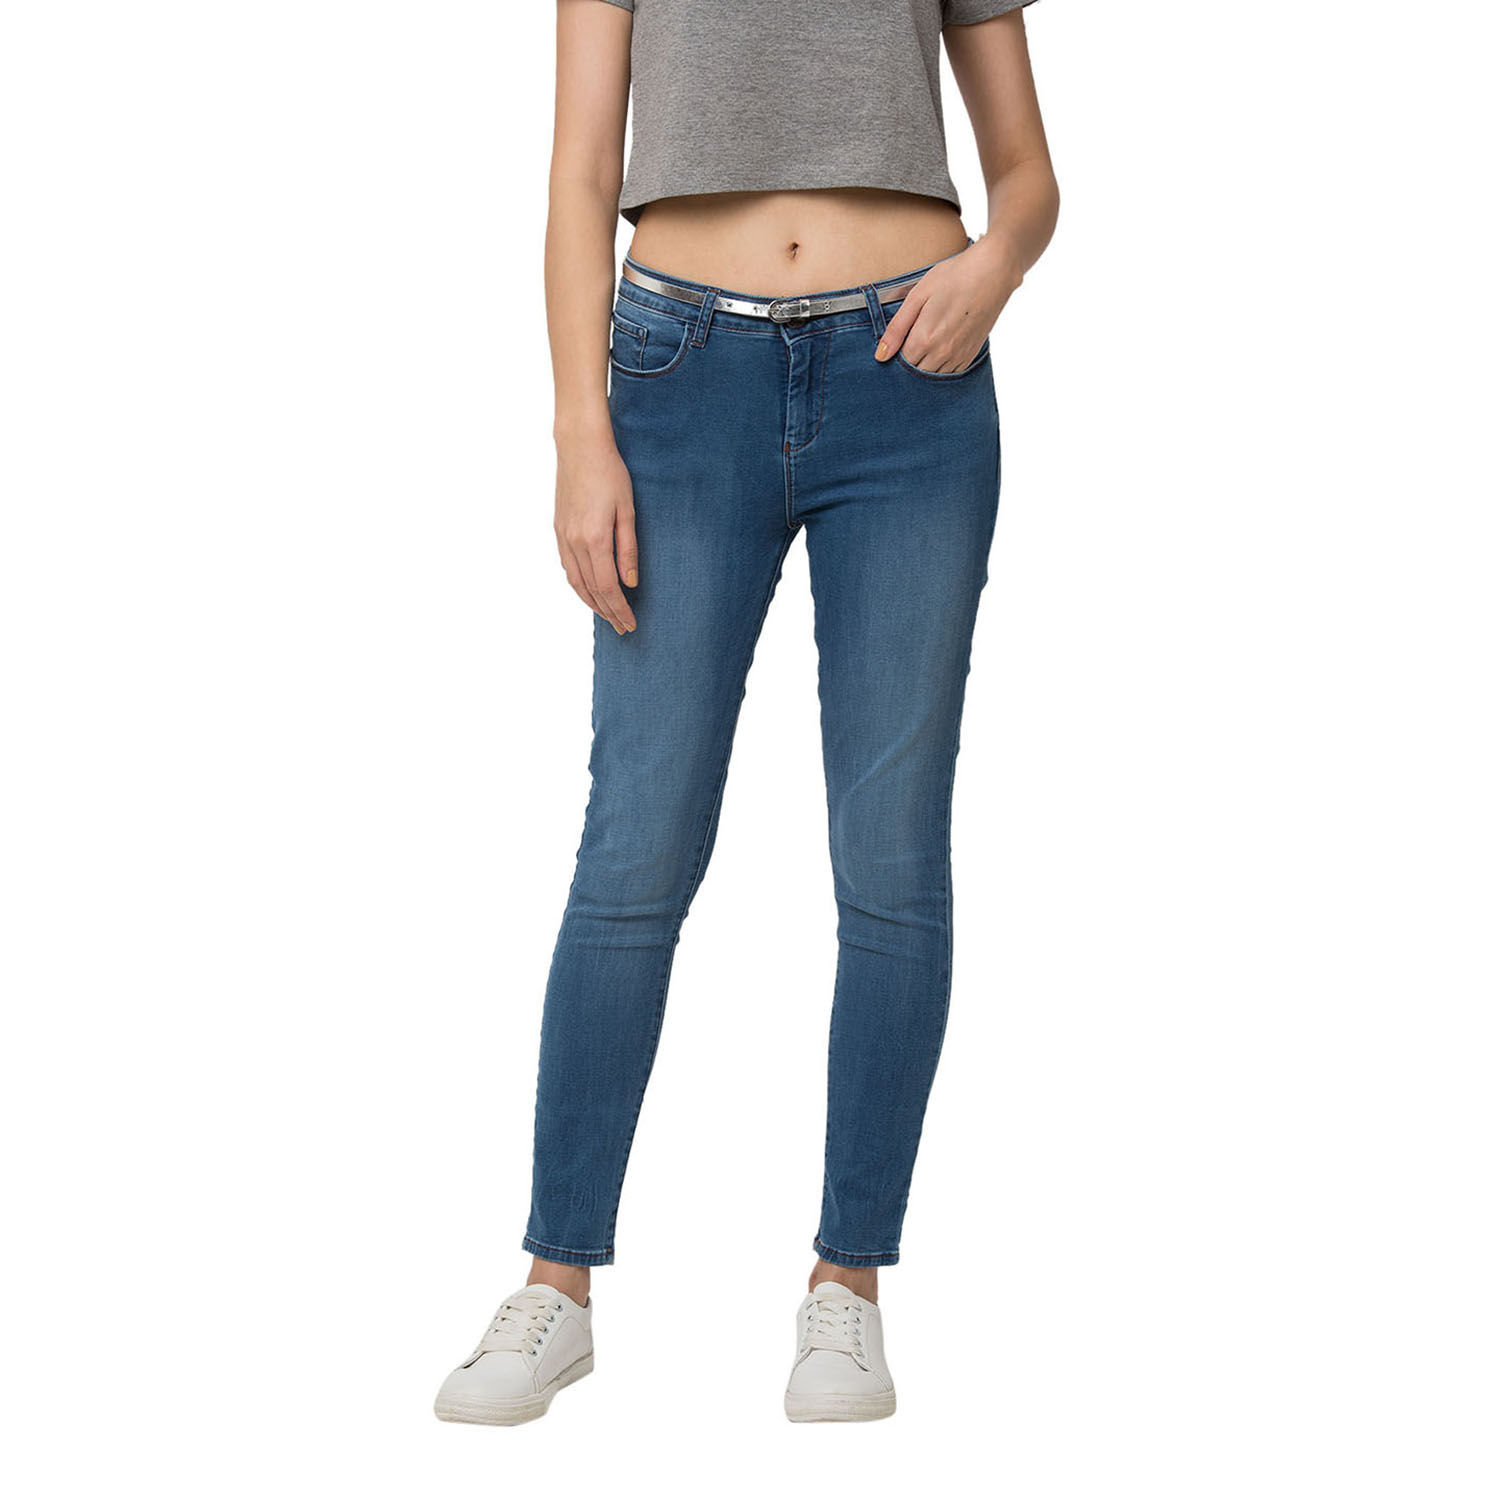 SPYKAR Mid Blue Cotton SKINNY JEANS